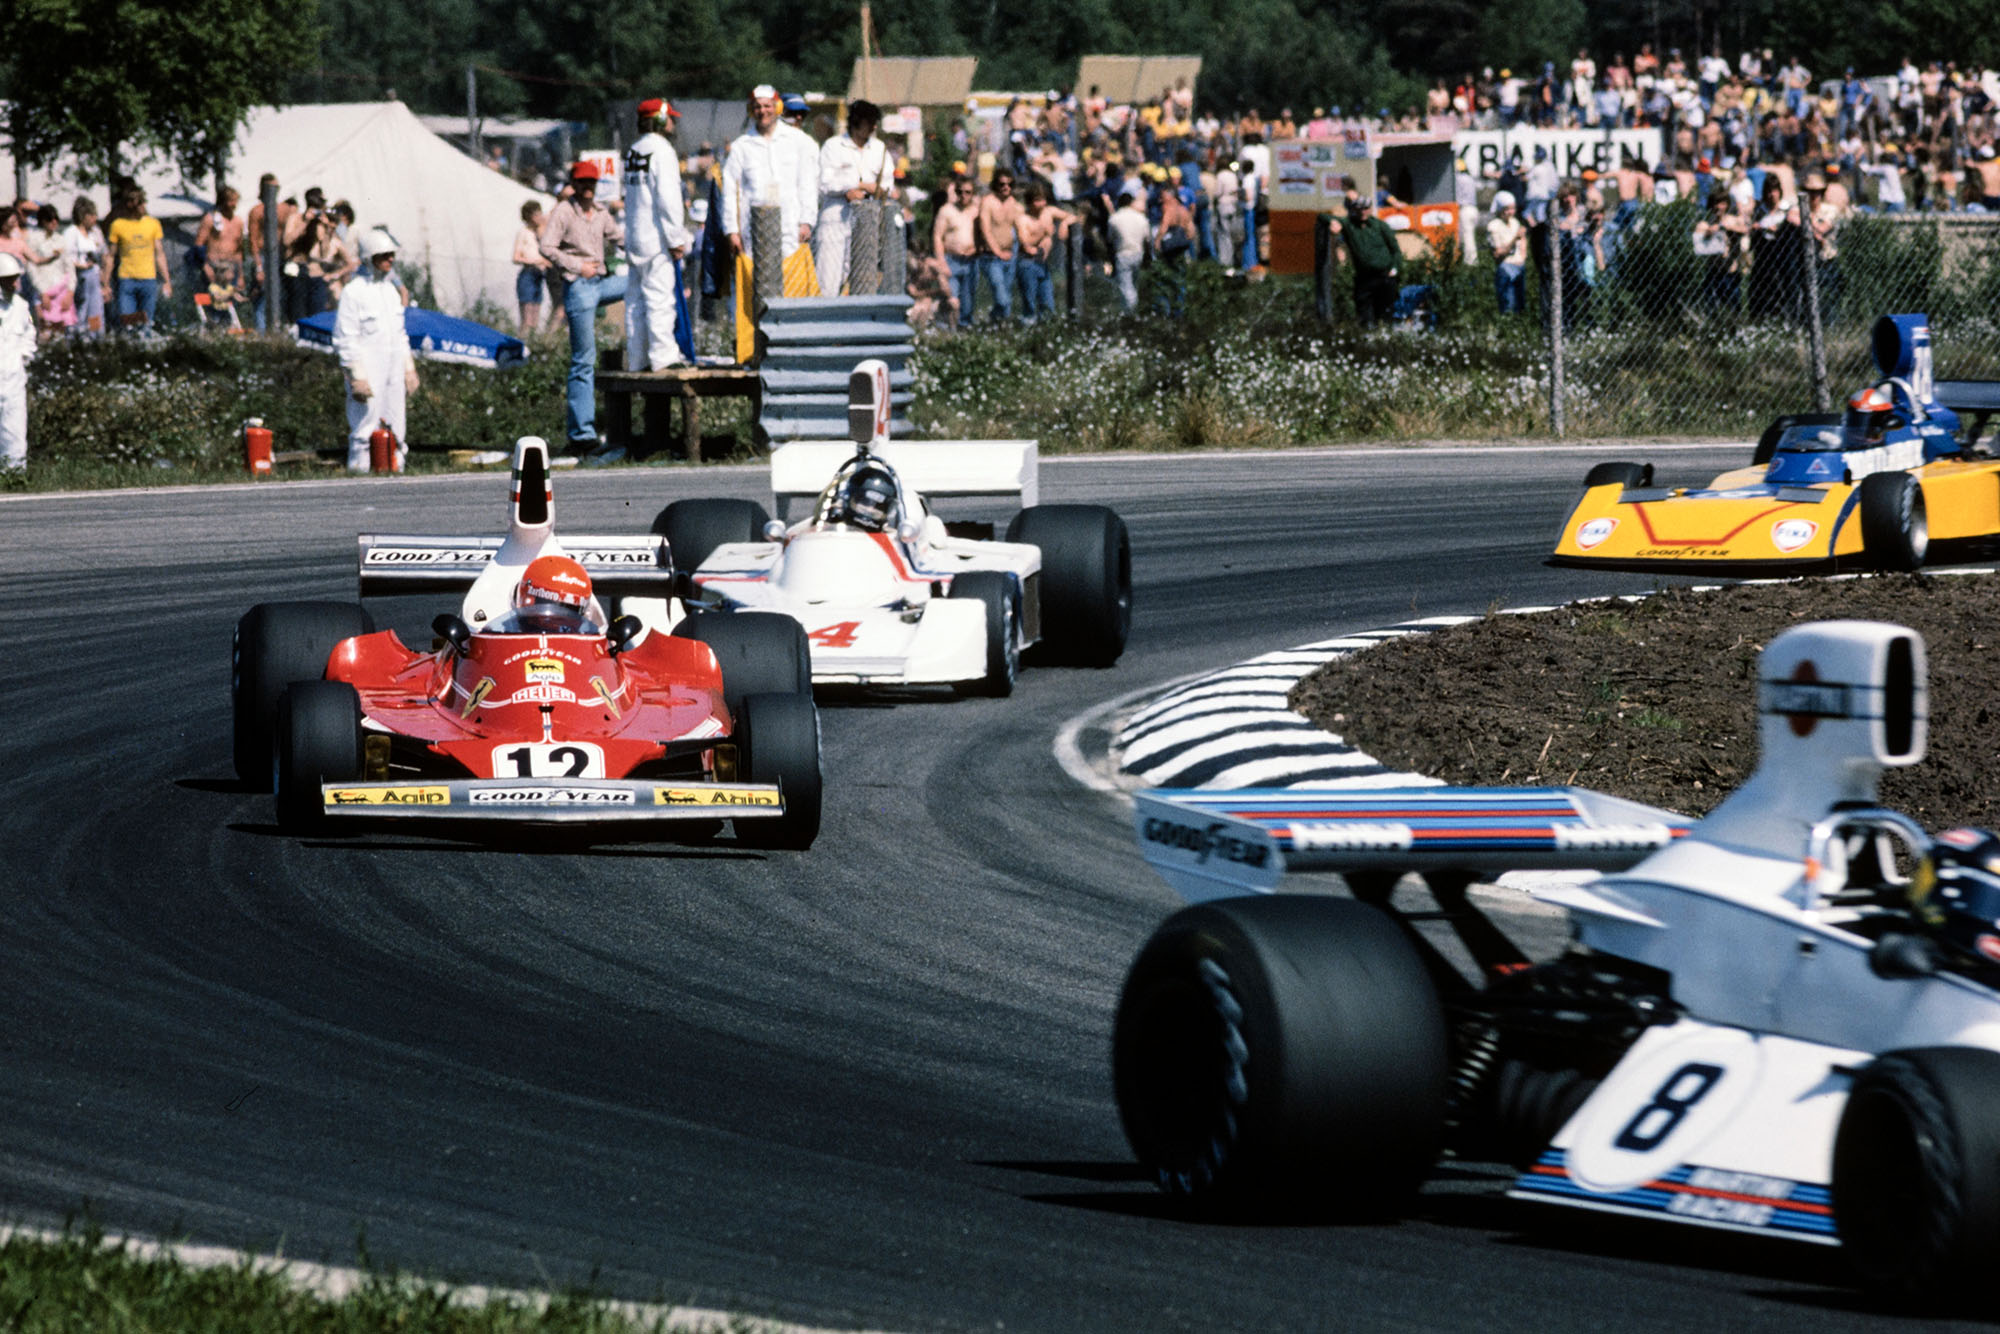 Carlos Pace (Brabham) leads Niki Lauda (Ferrari) and James Hunt (Hesketh).